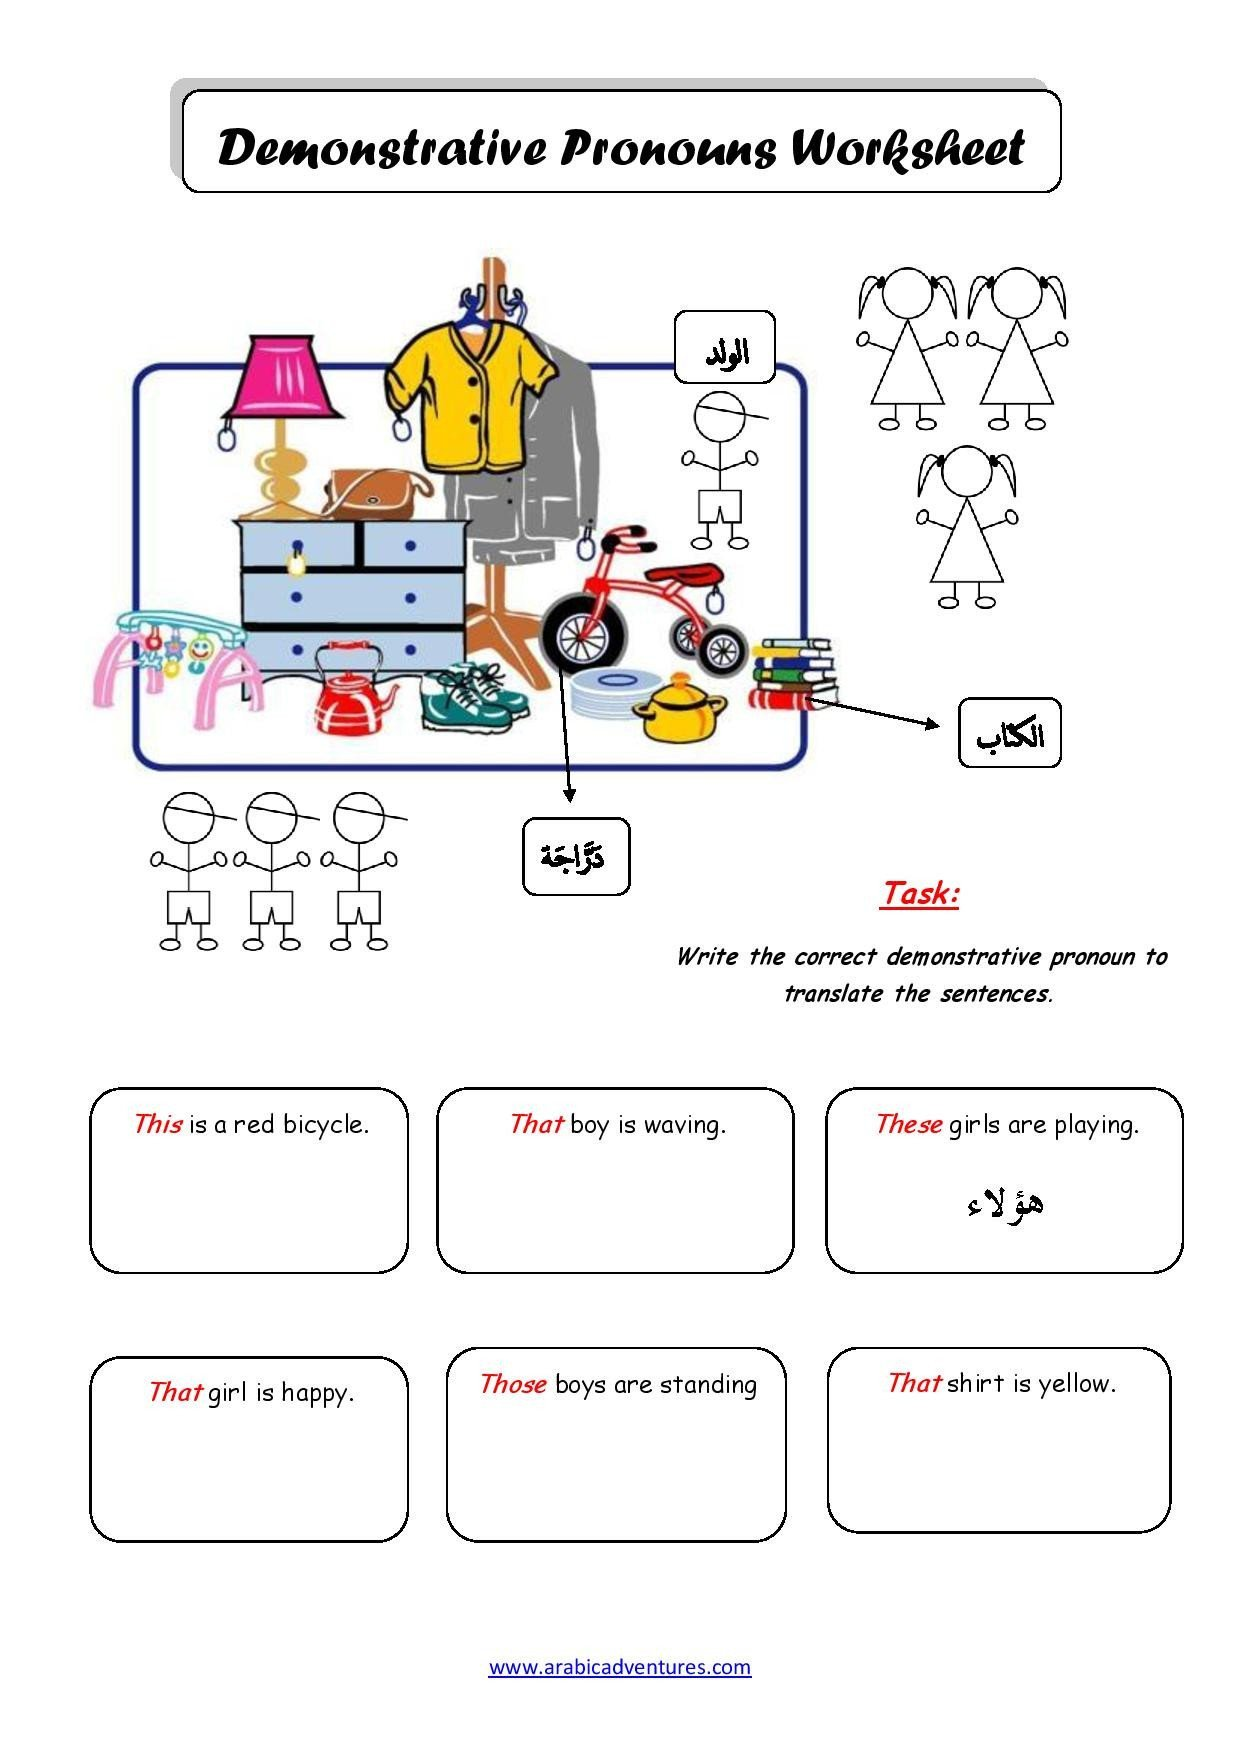 printable pronouns worksheets demonstrative pronouns worksheet of printable pronouns worksheets